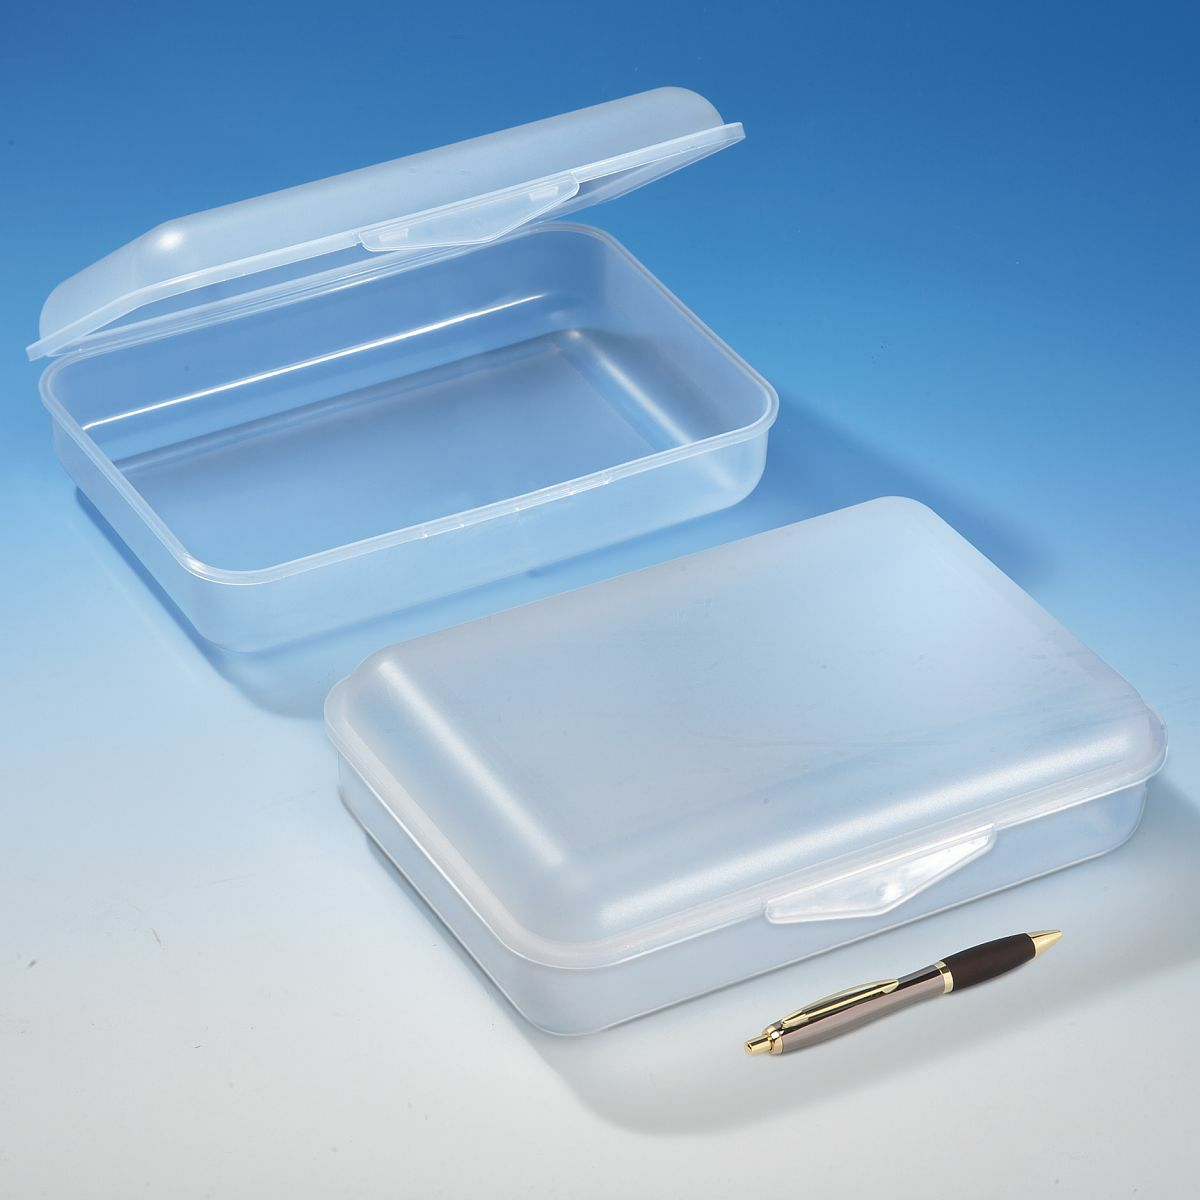 Stapelboxen Kunststoff Klickbox Maxi, 300 X 200 X 85 Mm, Transparent | Clickbox